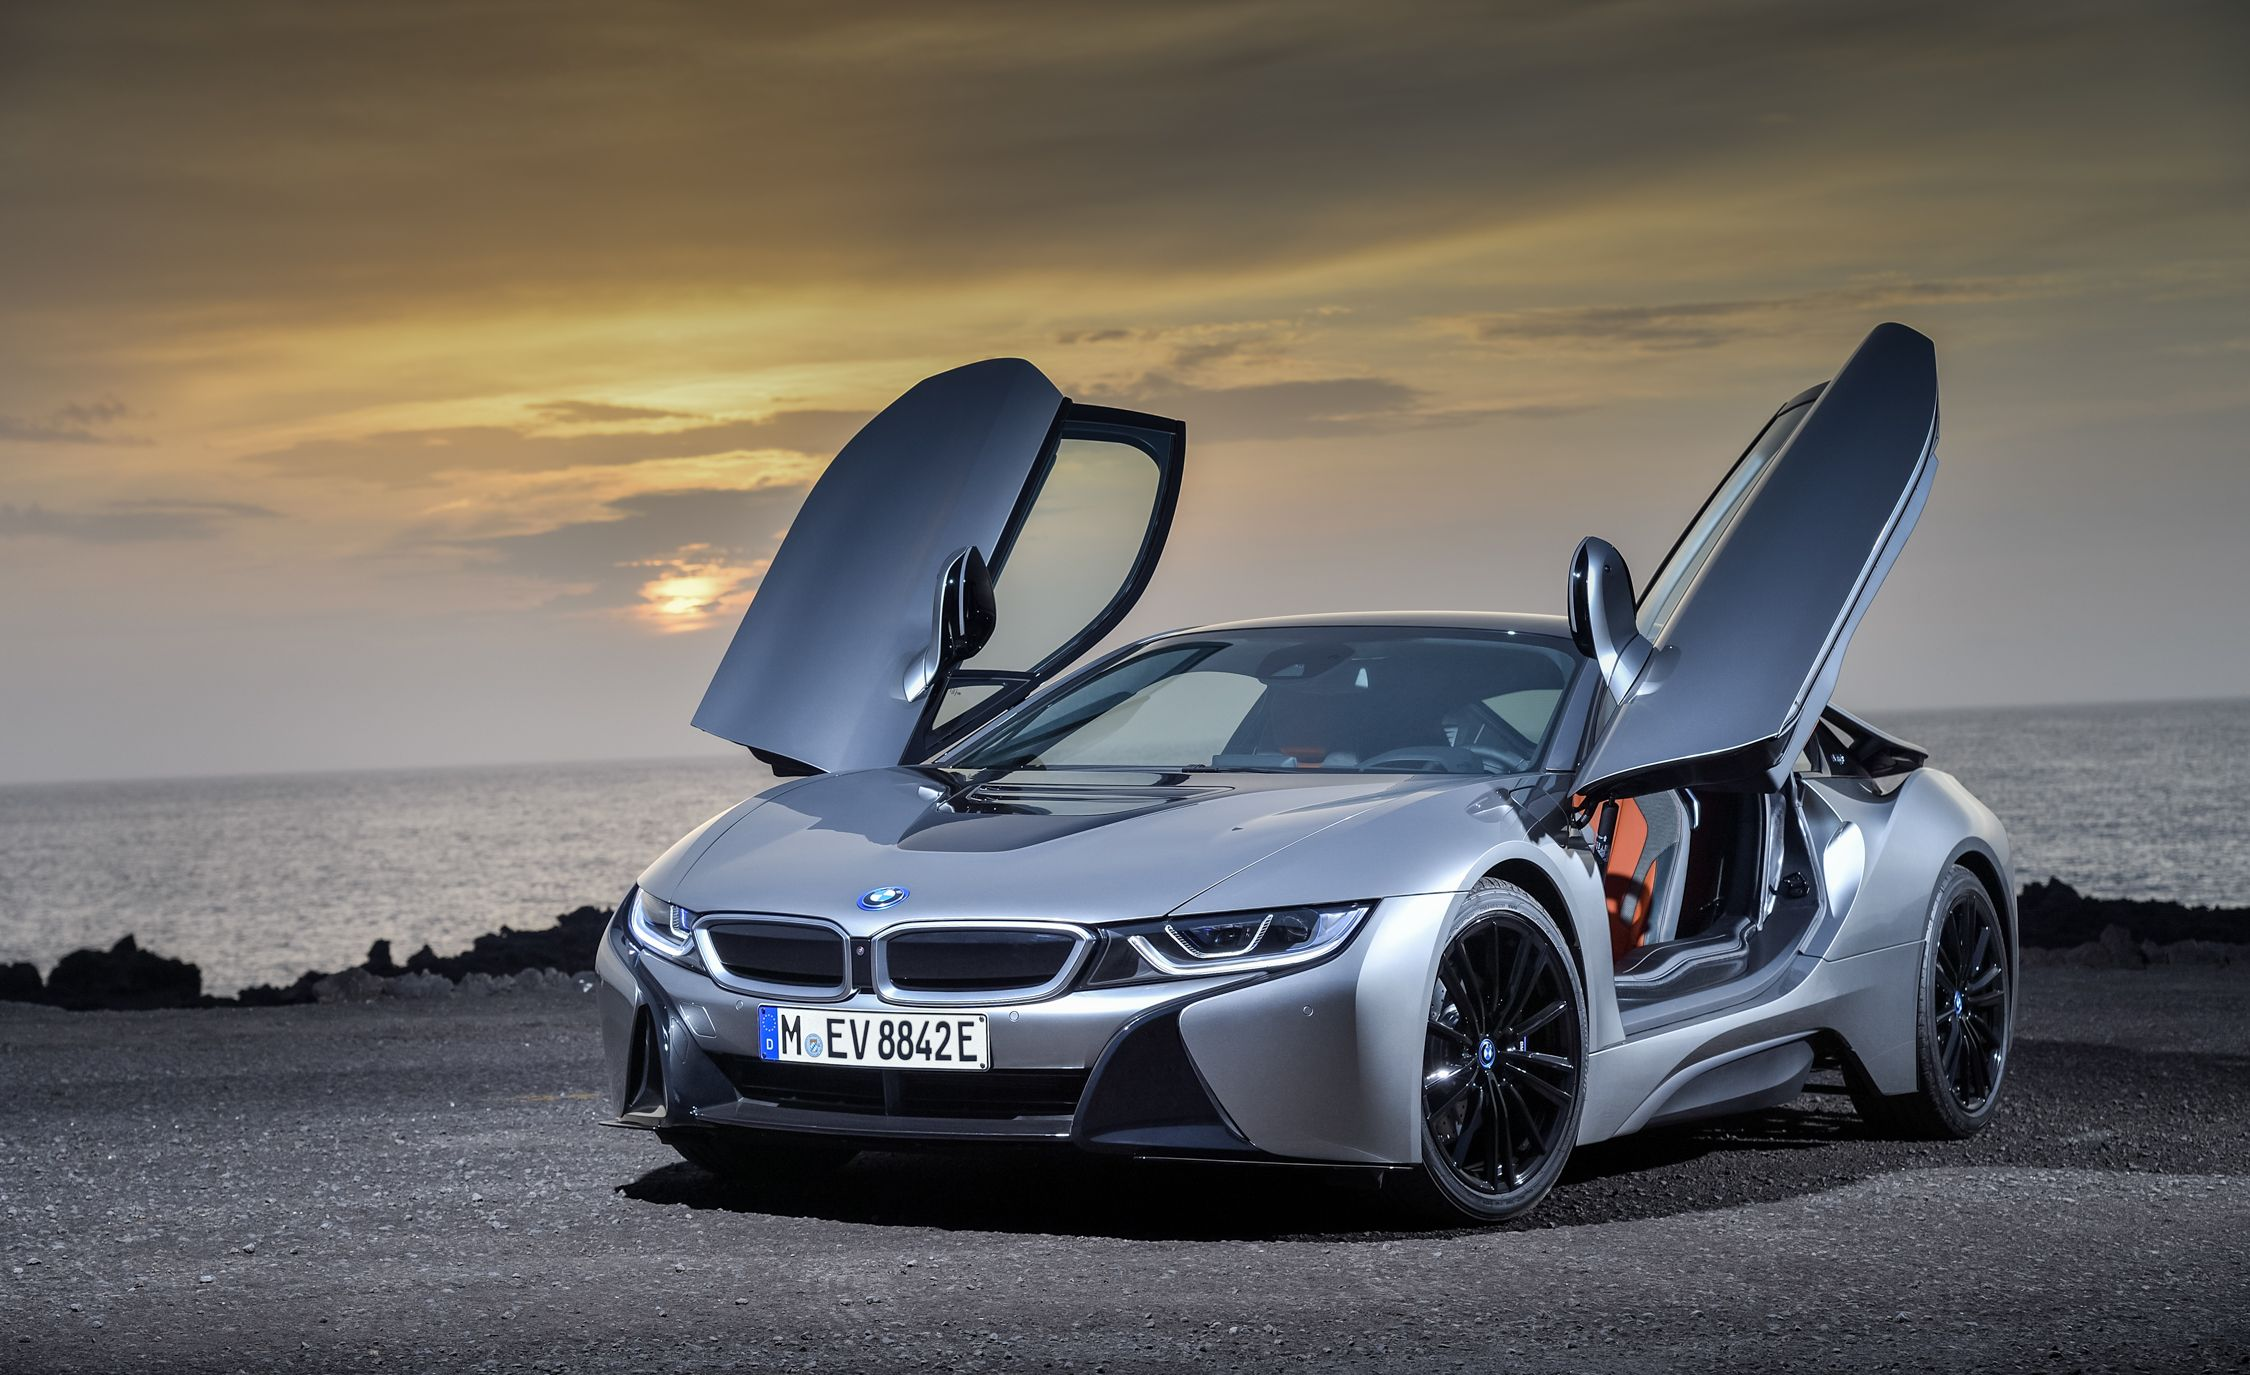 BMW I Reviews BMW I Price Photos And Specs Car And Driver - 2015 bmw i8 coupe price